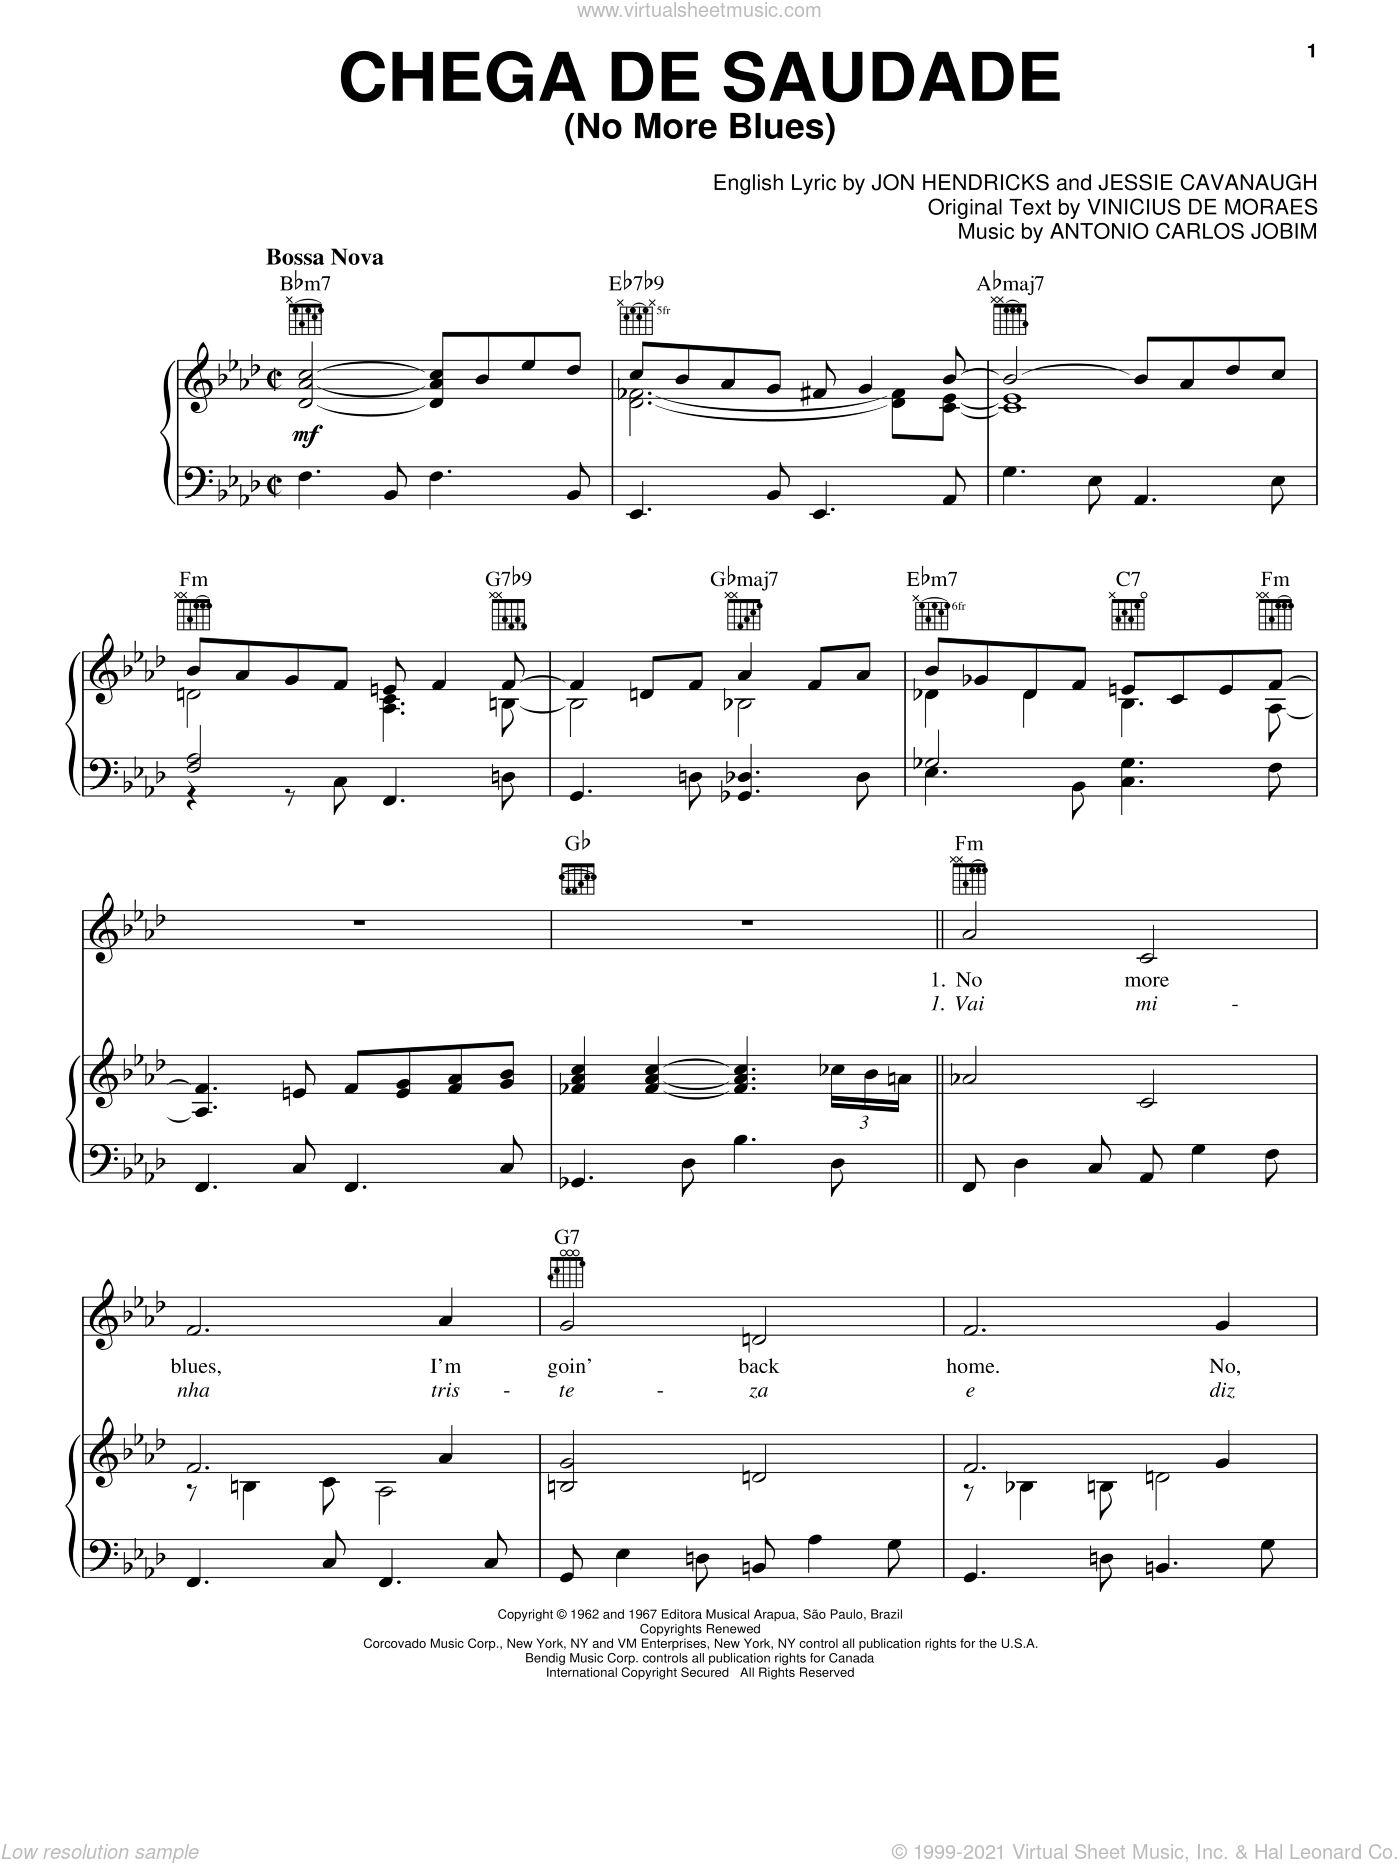 Chega De Saudade (No More Blues) sheet music for voice, piano or guitar by Jon Hendricks